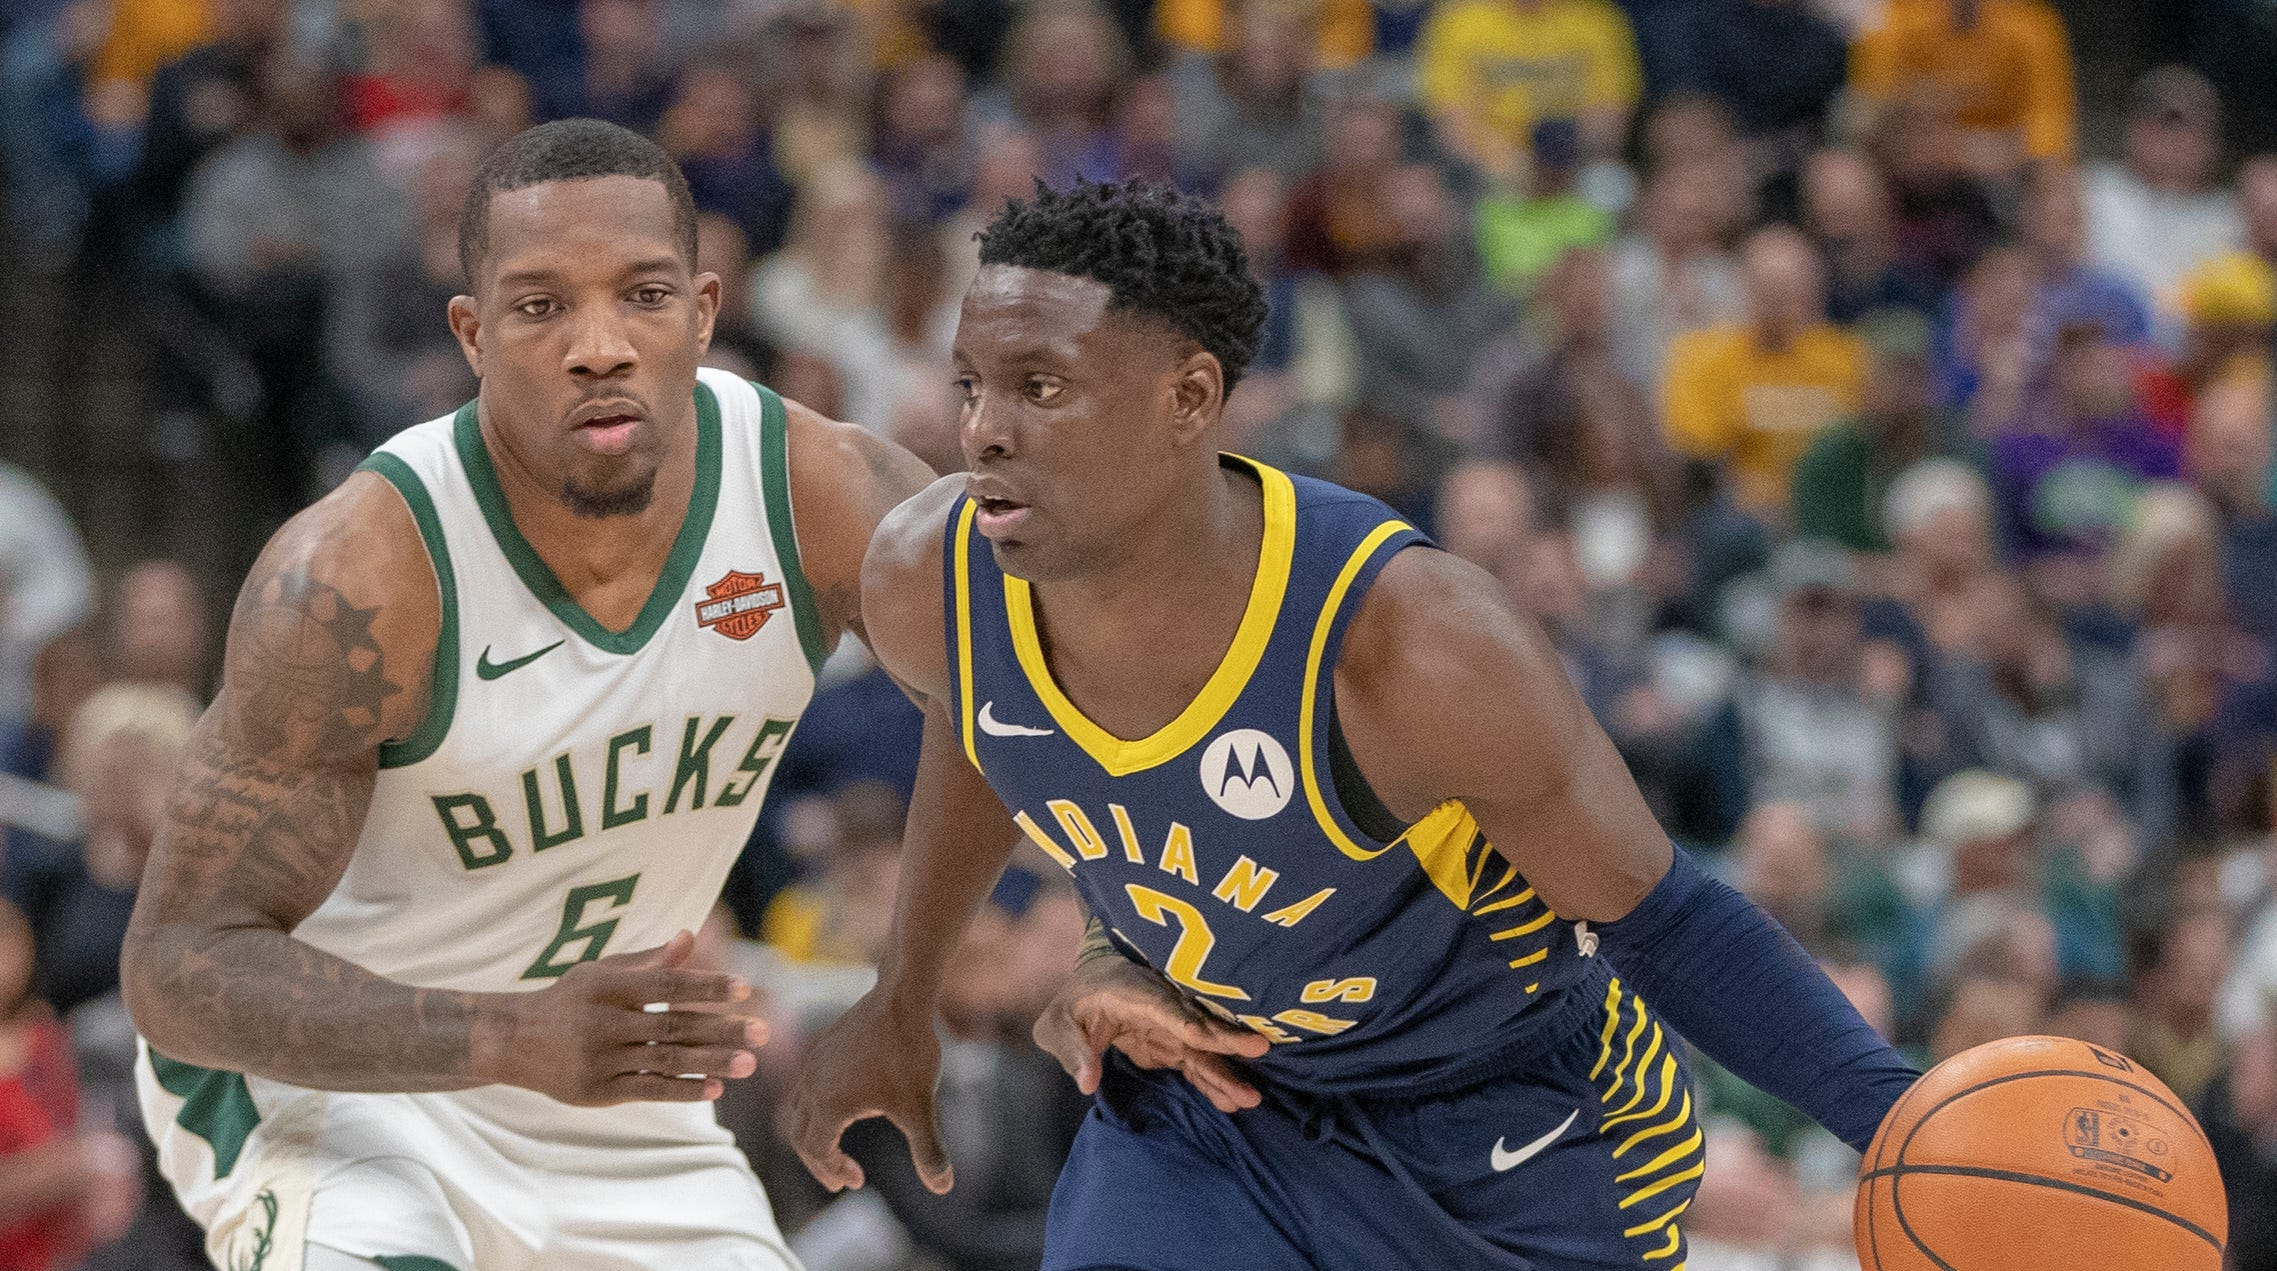 Darren Collison of the Indiana Pacers works around Eric Bledsoe of the Milwaukee Bucks, Bankers Life Fieldhouse, Indianapolis, Wednesday, Feb. 13, 2019. Milwaukee won 106-97.